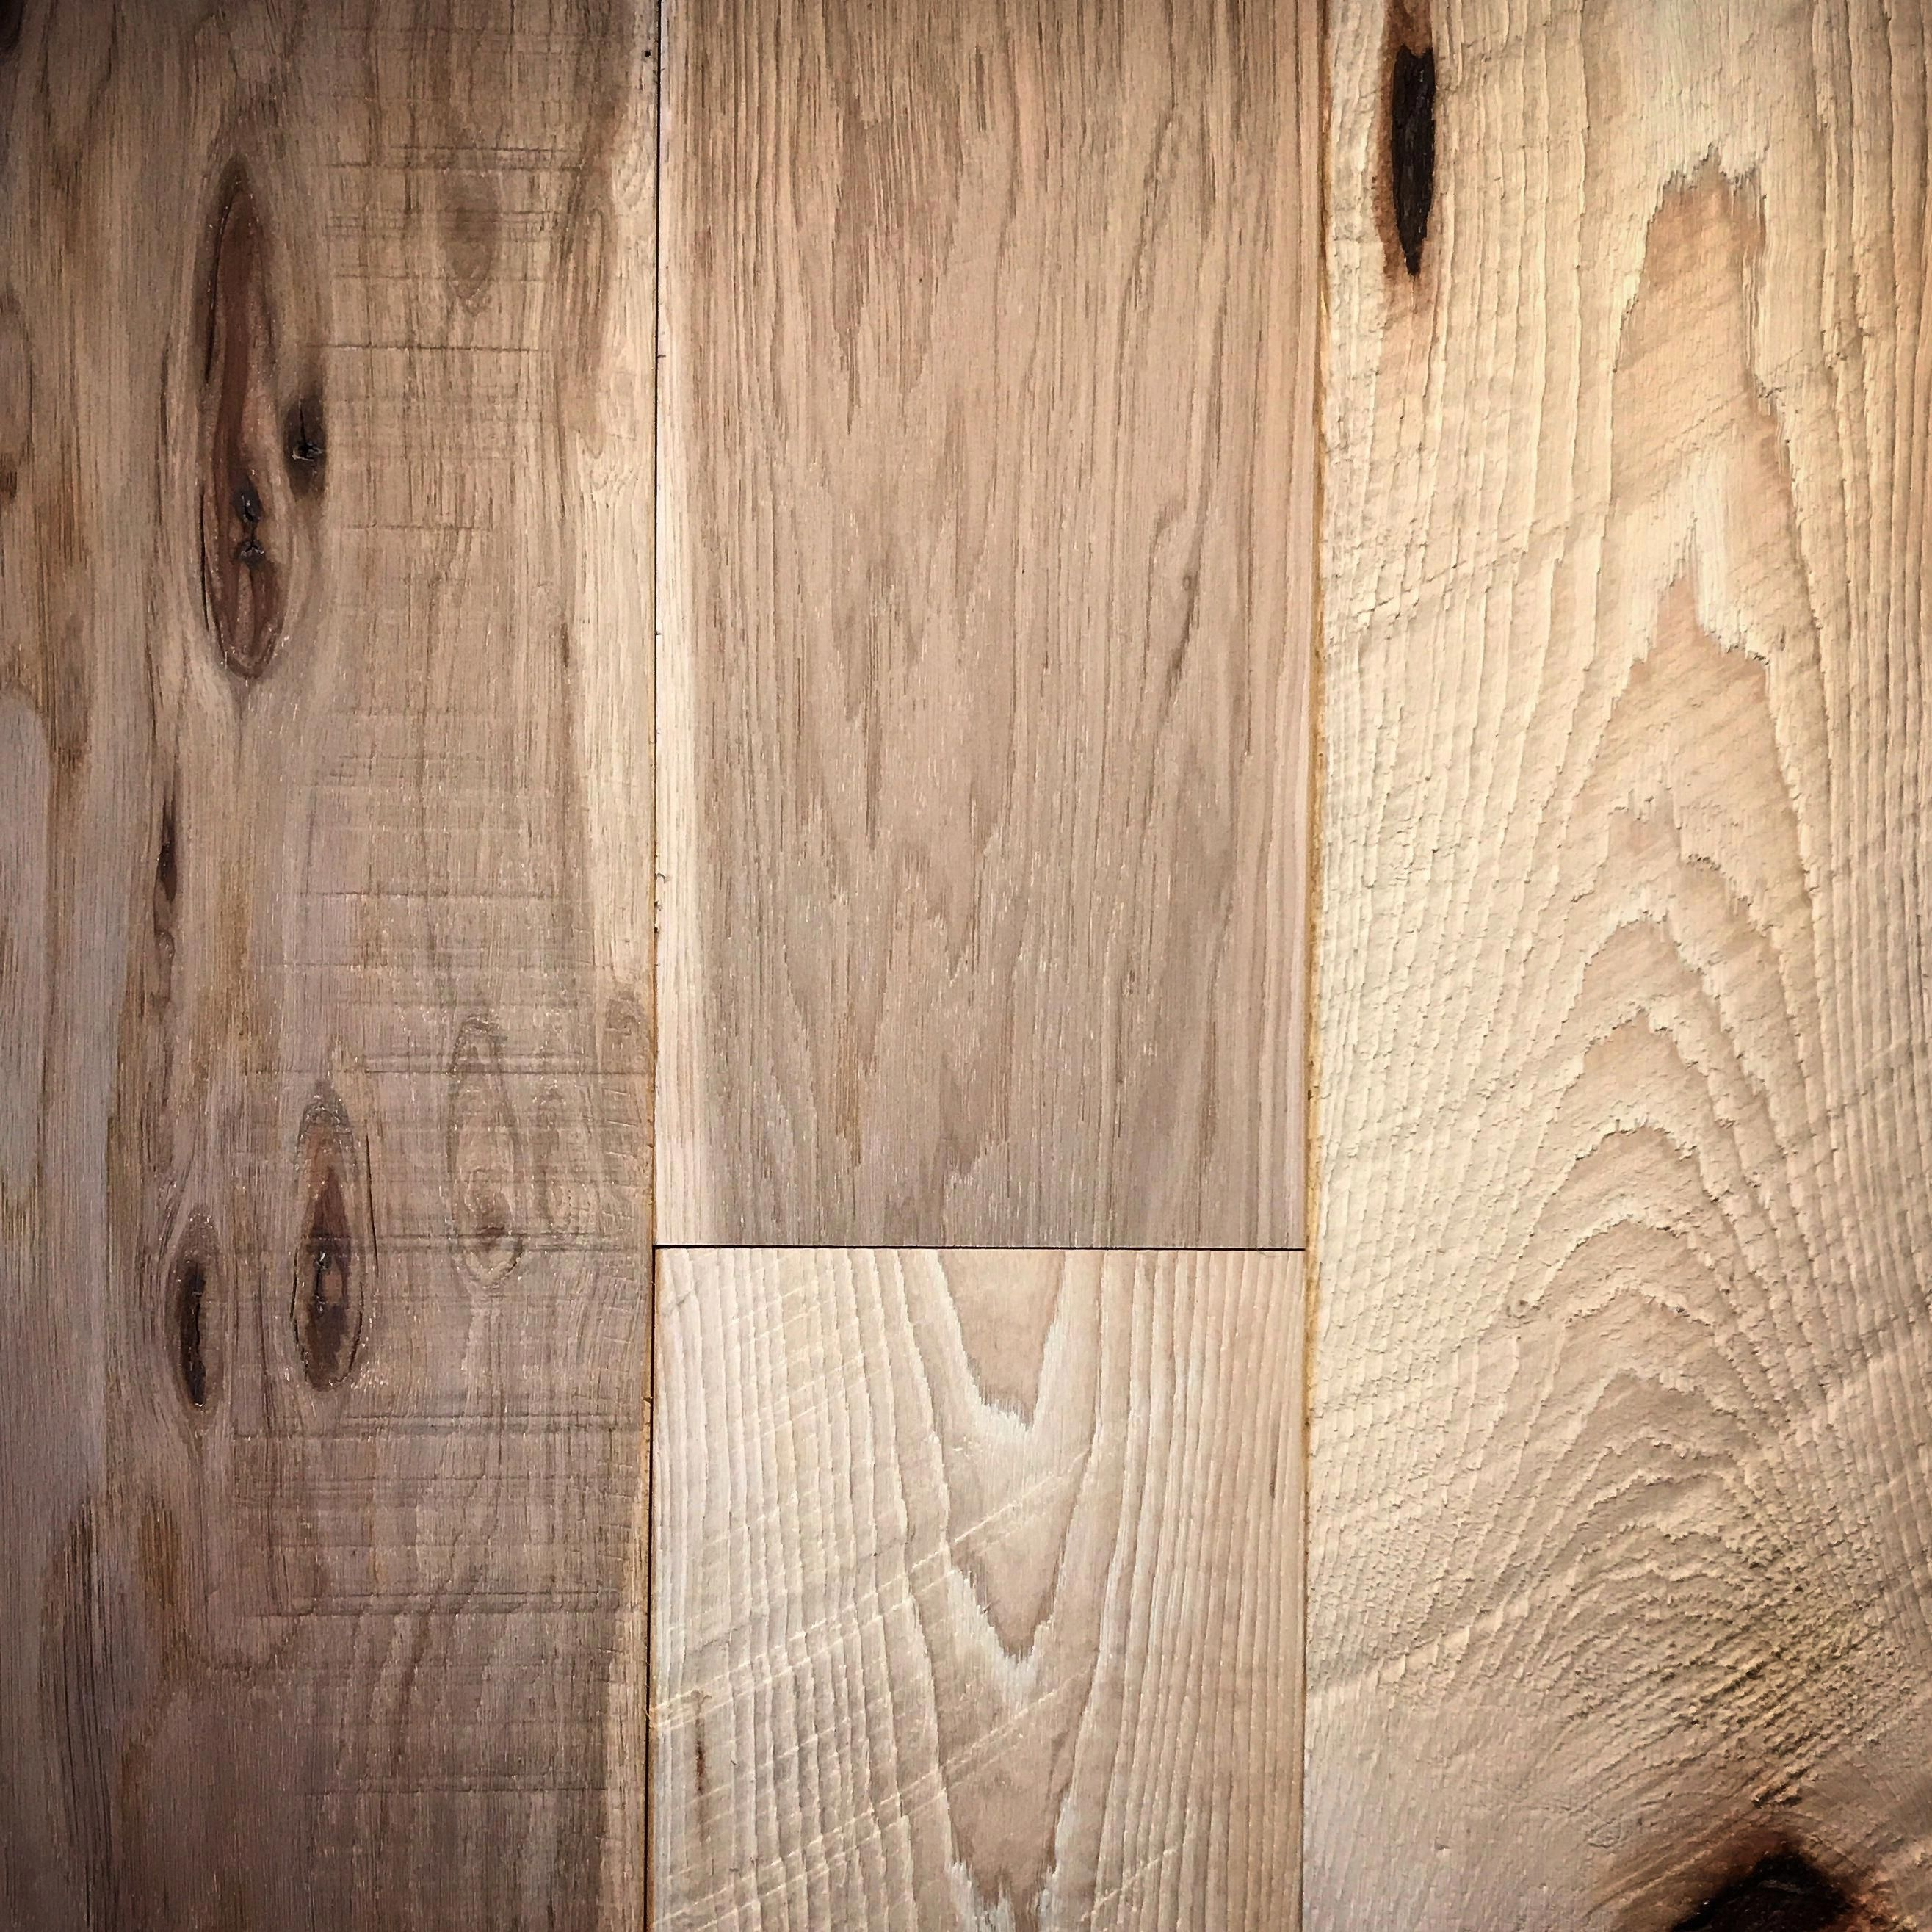 Take A Look At Our Internet Site For A Little More Pertaining To This Marvelous Photo Wideplankfloorideas Flooring Hickory Hardwood Floors Hardwood